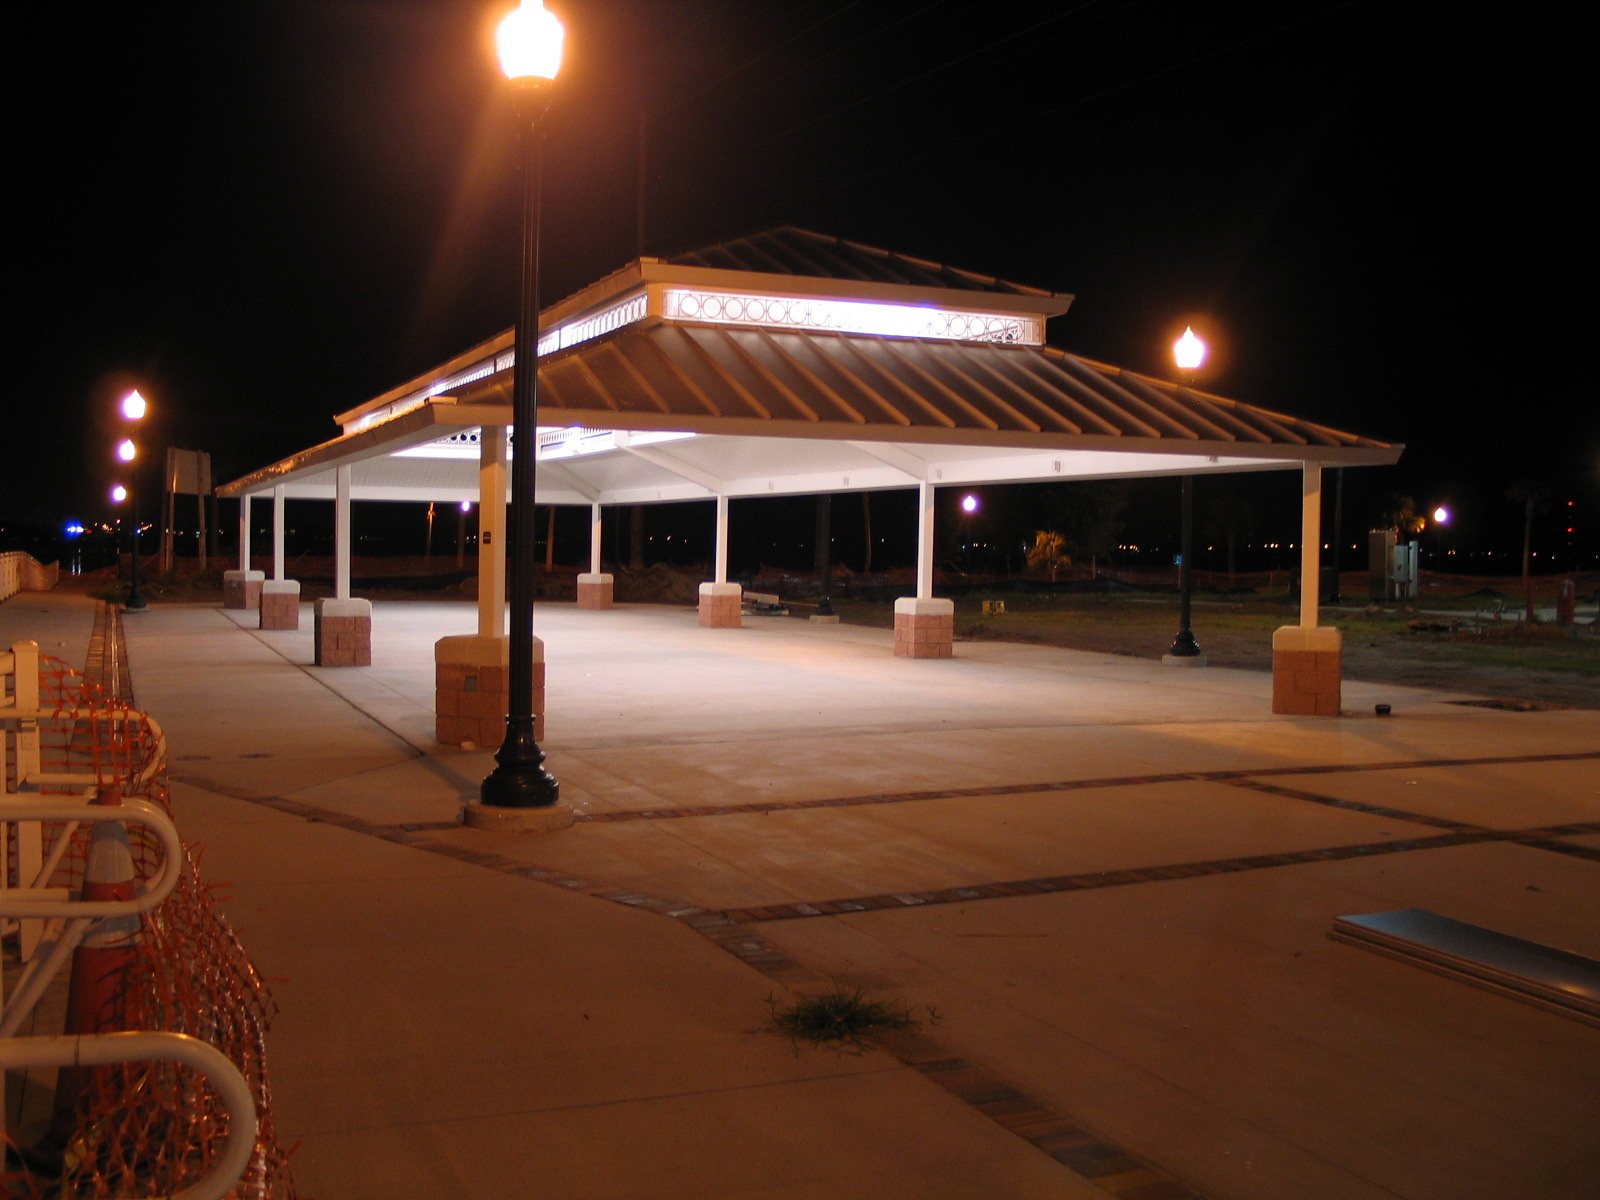 Laishley Pavilion at night